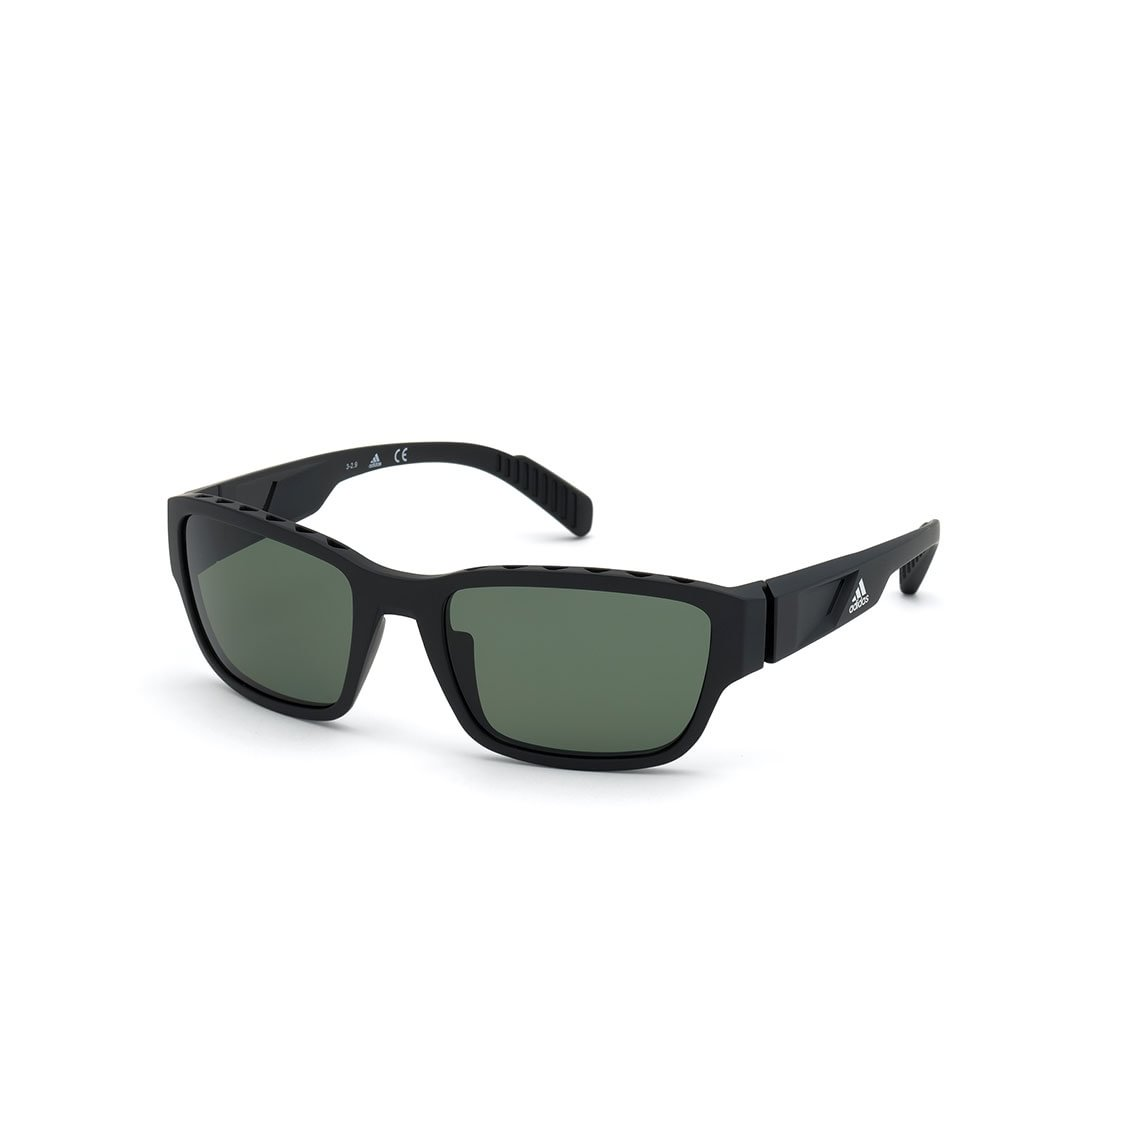 Adidas Sport Green Polarized SP0007 02R 5720